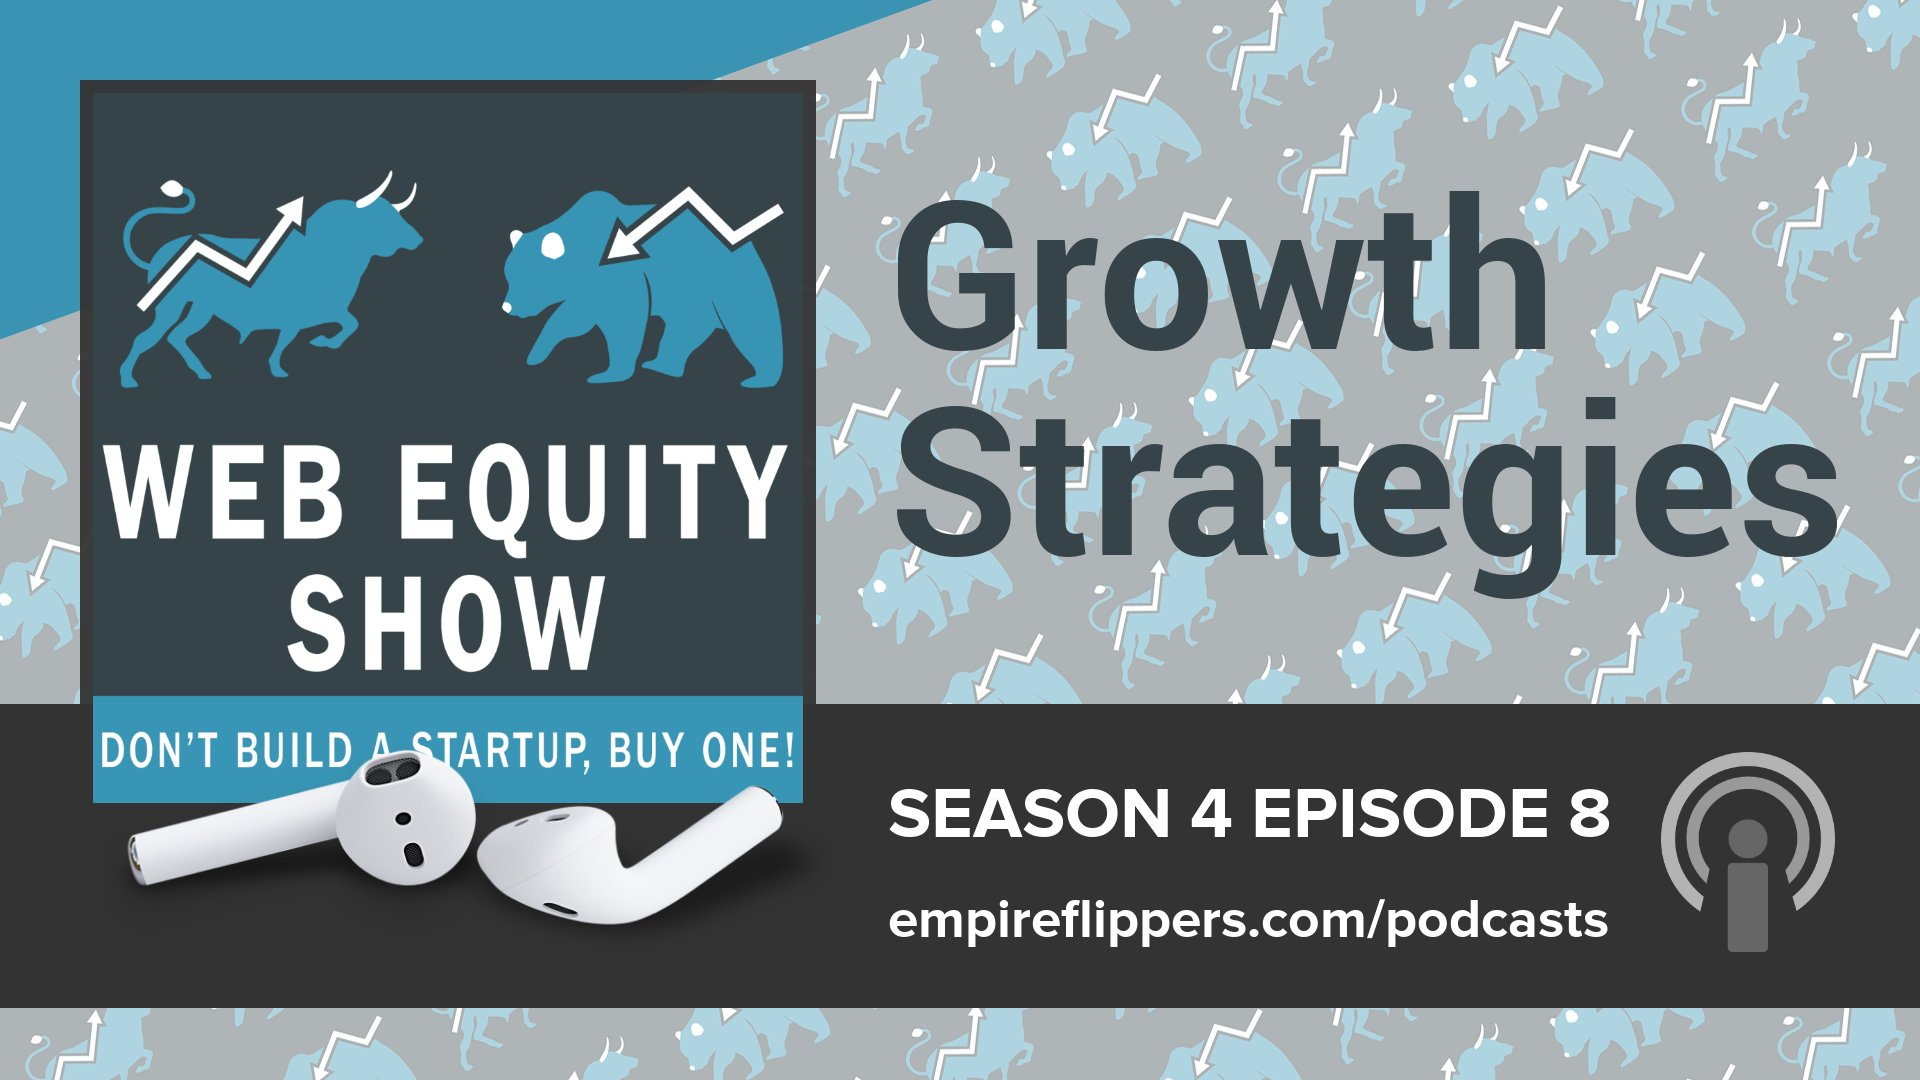 Web Equity Show - Growth Strategies